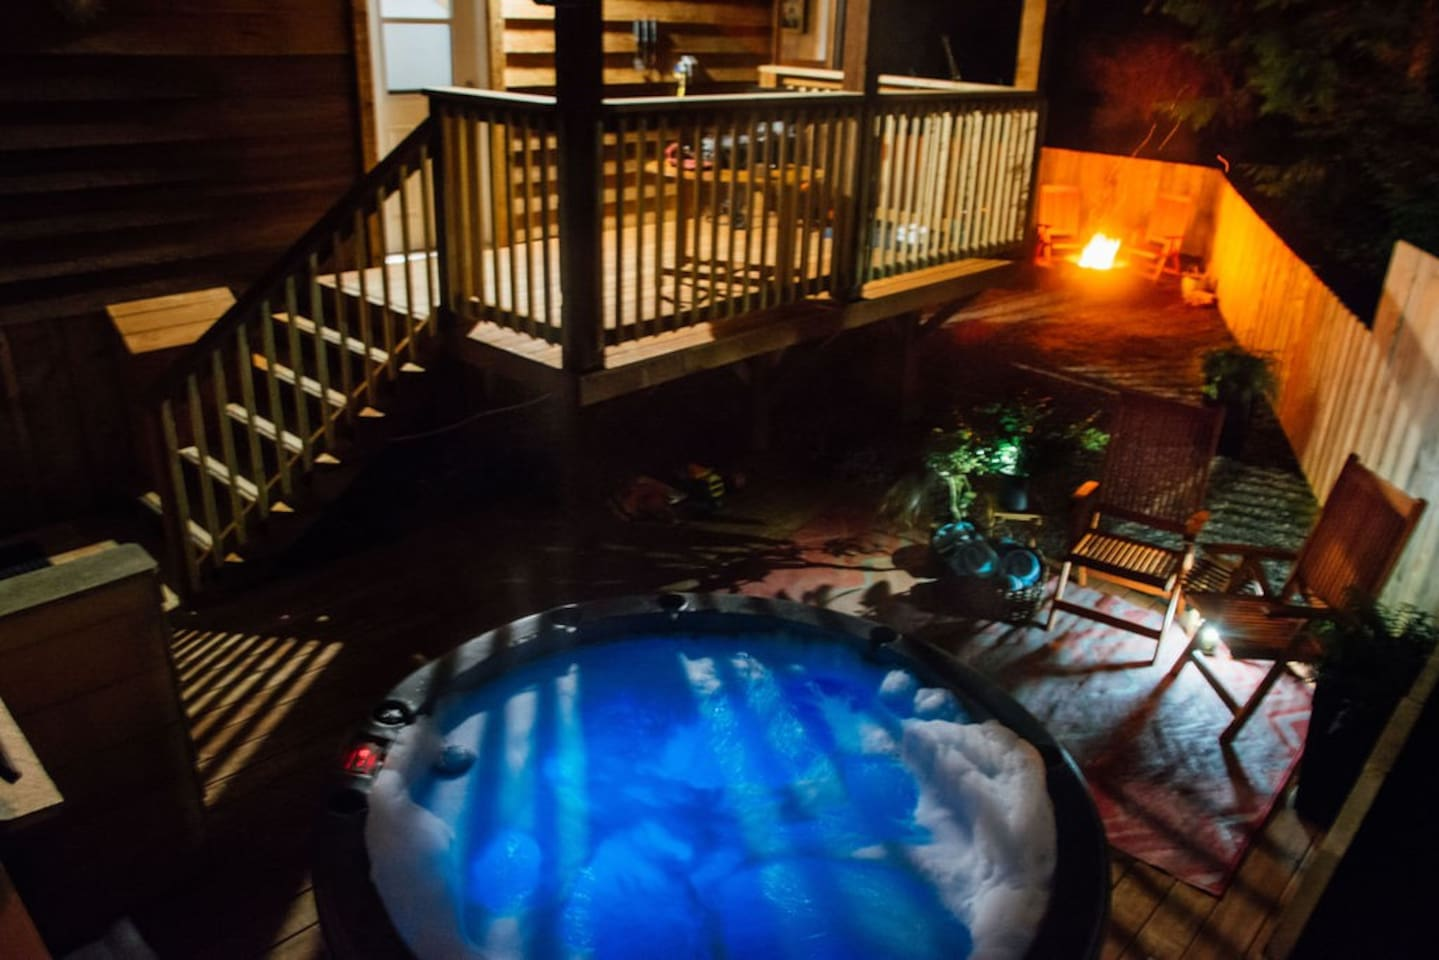 Secluded fully fenced yard with your own  private hot tub and fire pit. Covered deck with BBQ and outdoor eating area.   We are a legally permitted vacation rental. GST is included in our nightly rate.